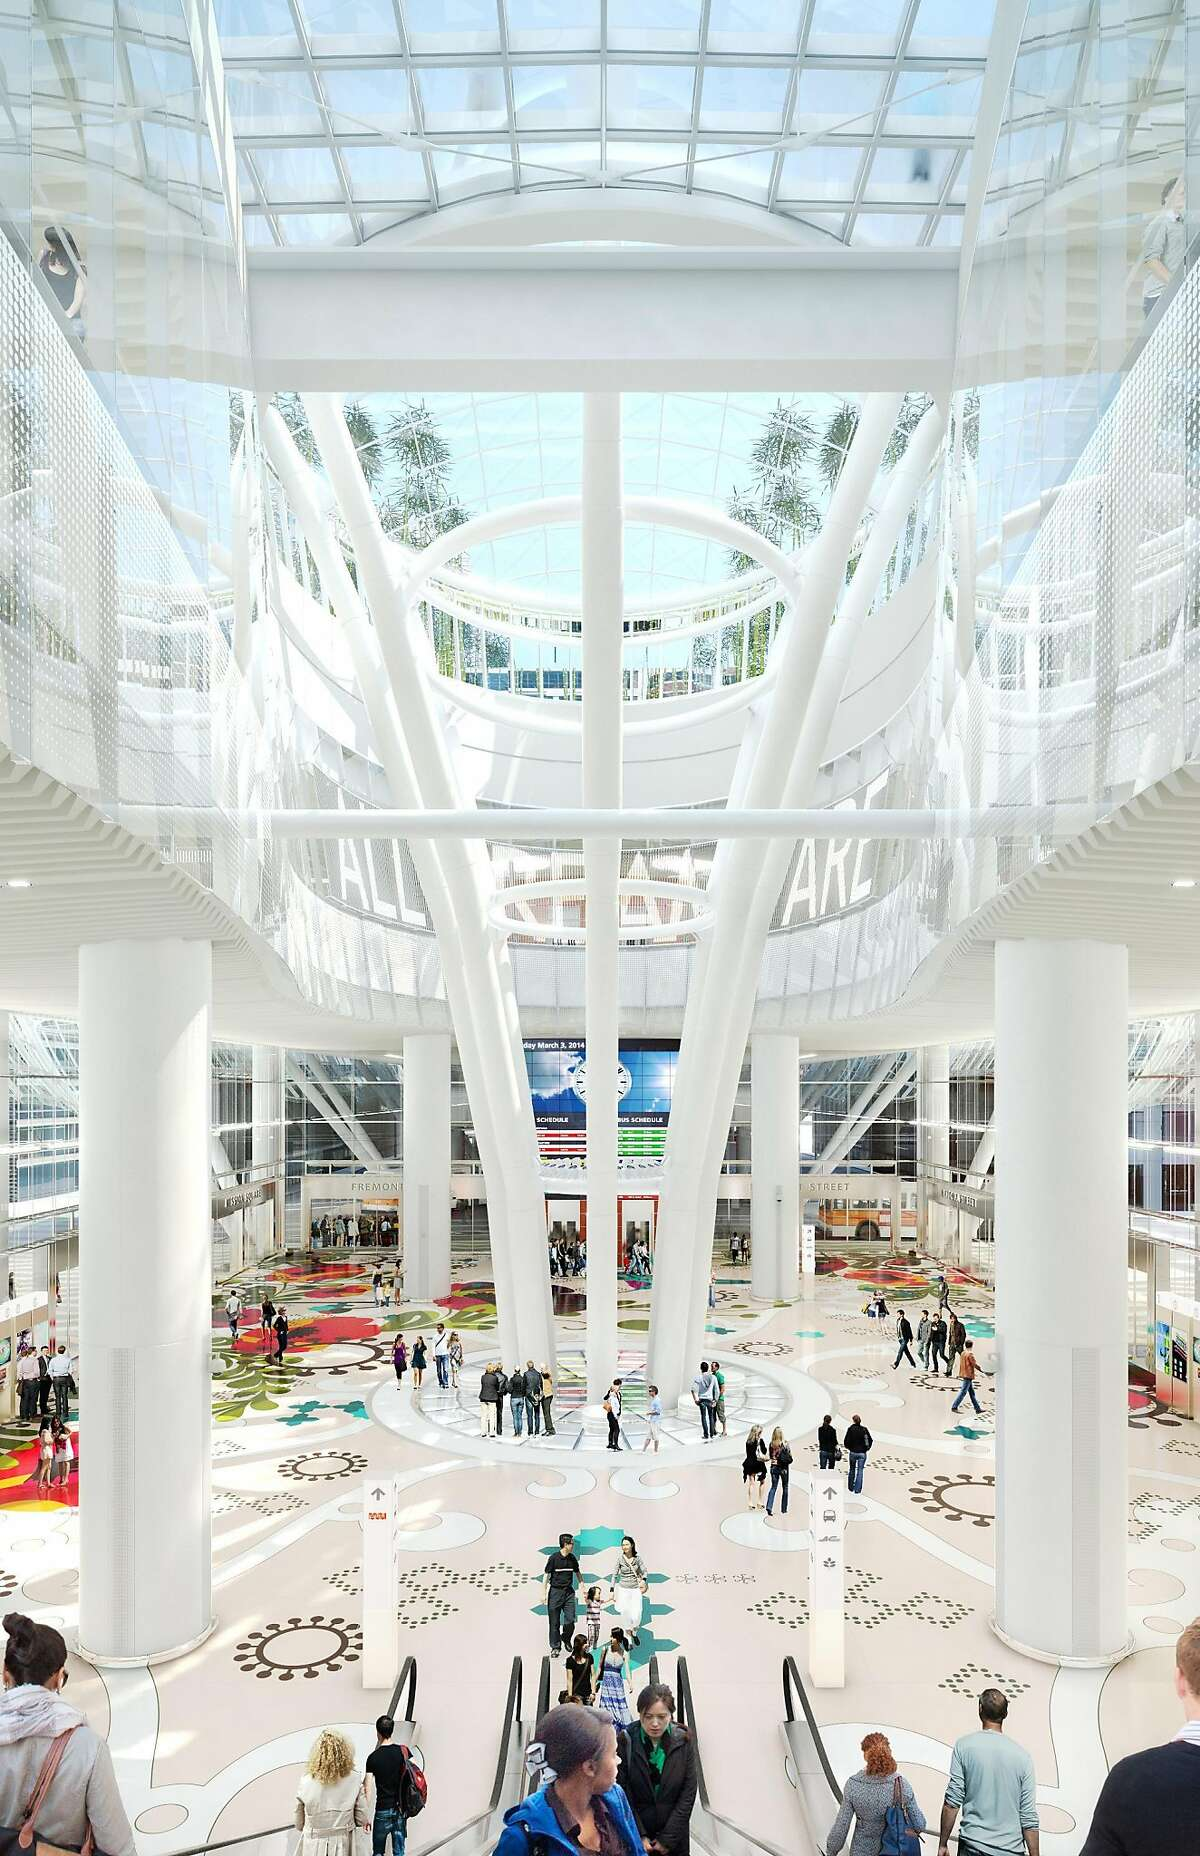 Architect's rendering of the planned Transbay Transit Center, with flooring design by Bay Area artist Julie Chang and Jenny Holzer LED installation above.